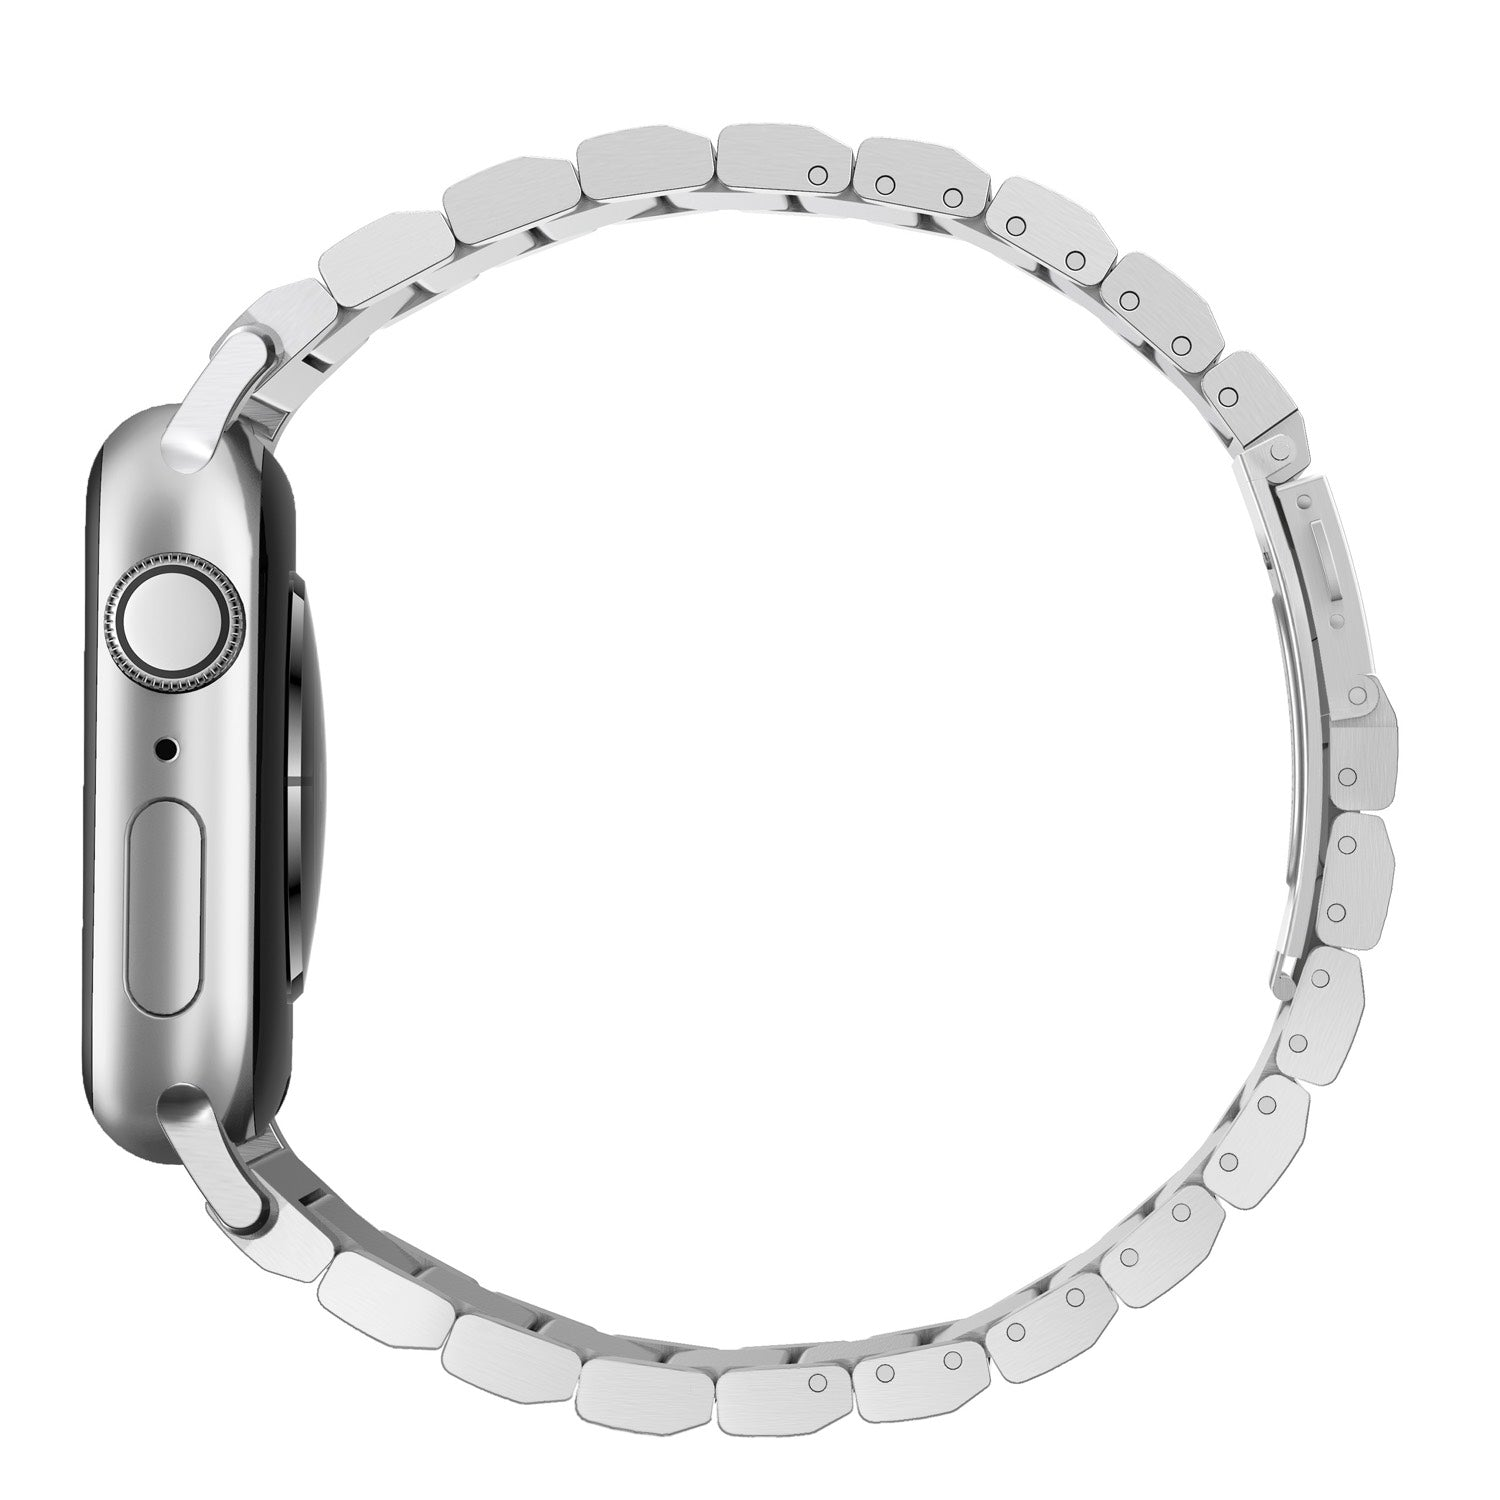 Steel Band for Apple Watch 42/44mm - Silver hardware